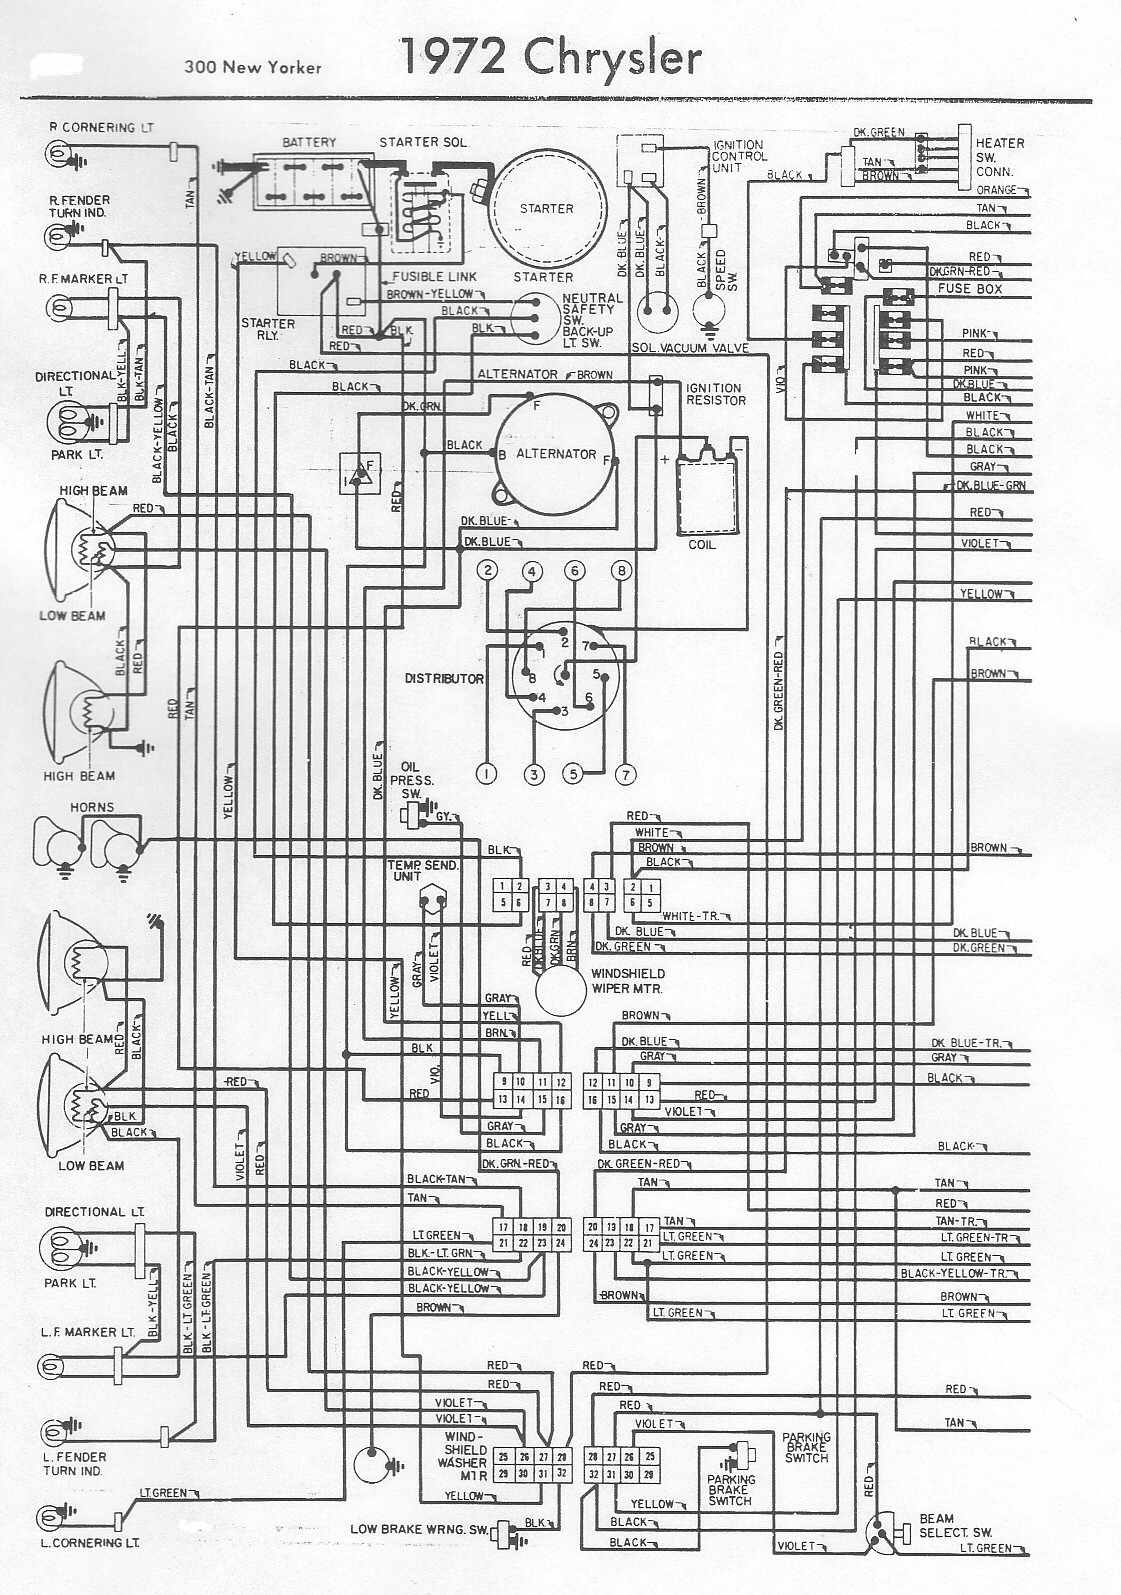 2006 cadillac wiring diagrams wiring library 2008 dodge dakota electrical schematic 1956 cadillac wiring diagram simple [ 1121 x 1595 Pixel ]